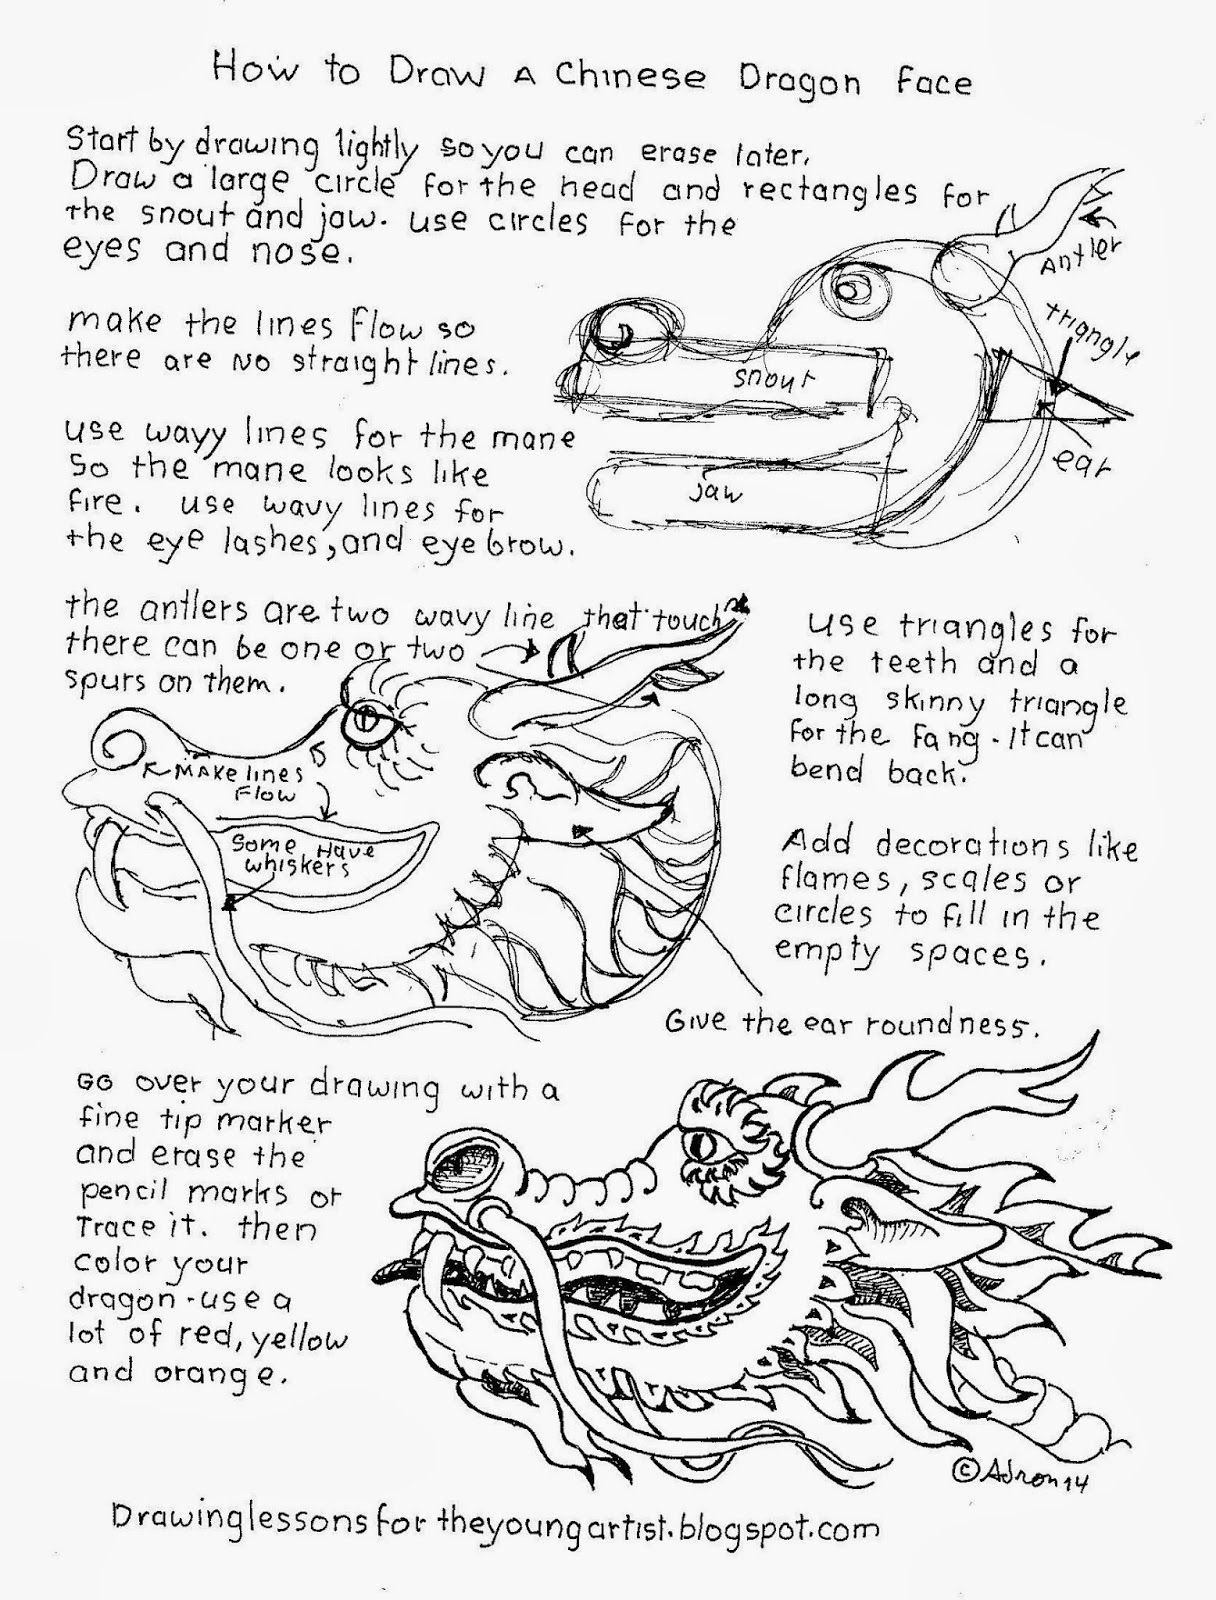 worksheet How To Draw Worksheets how to draw a chinese dragon head worksheet see more at my blog http